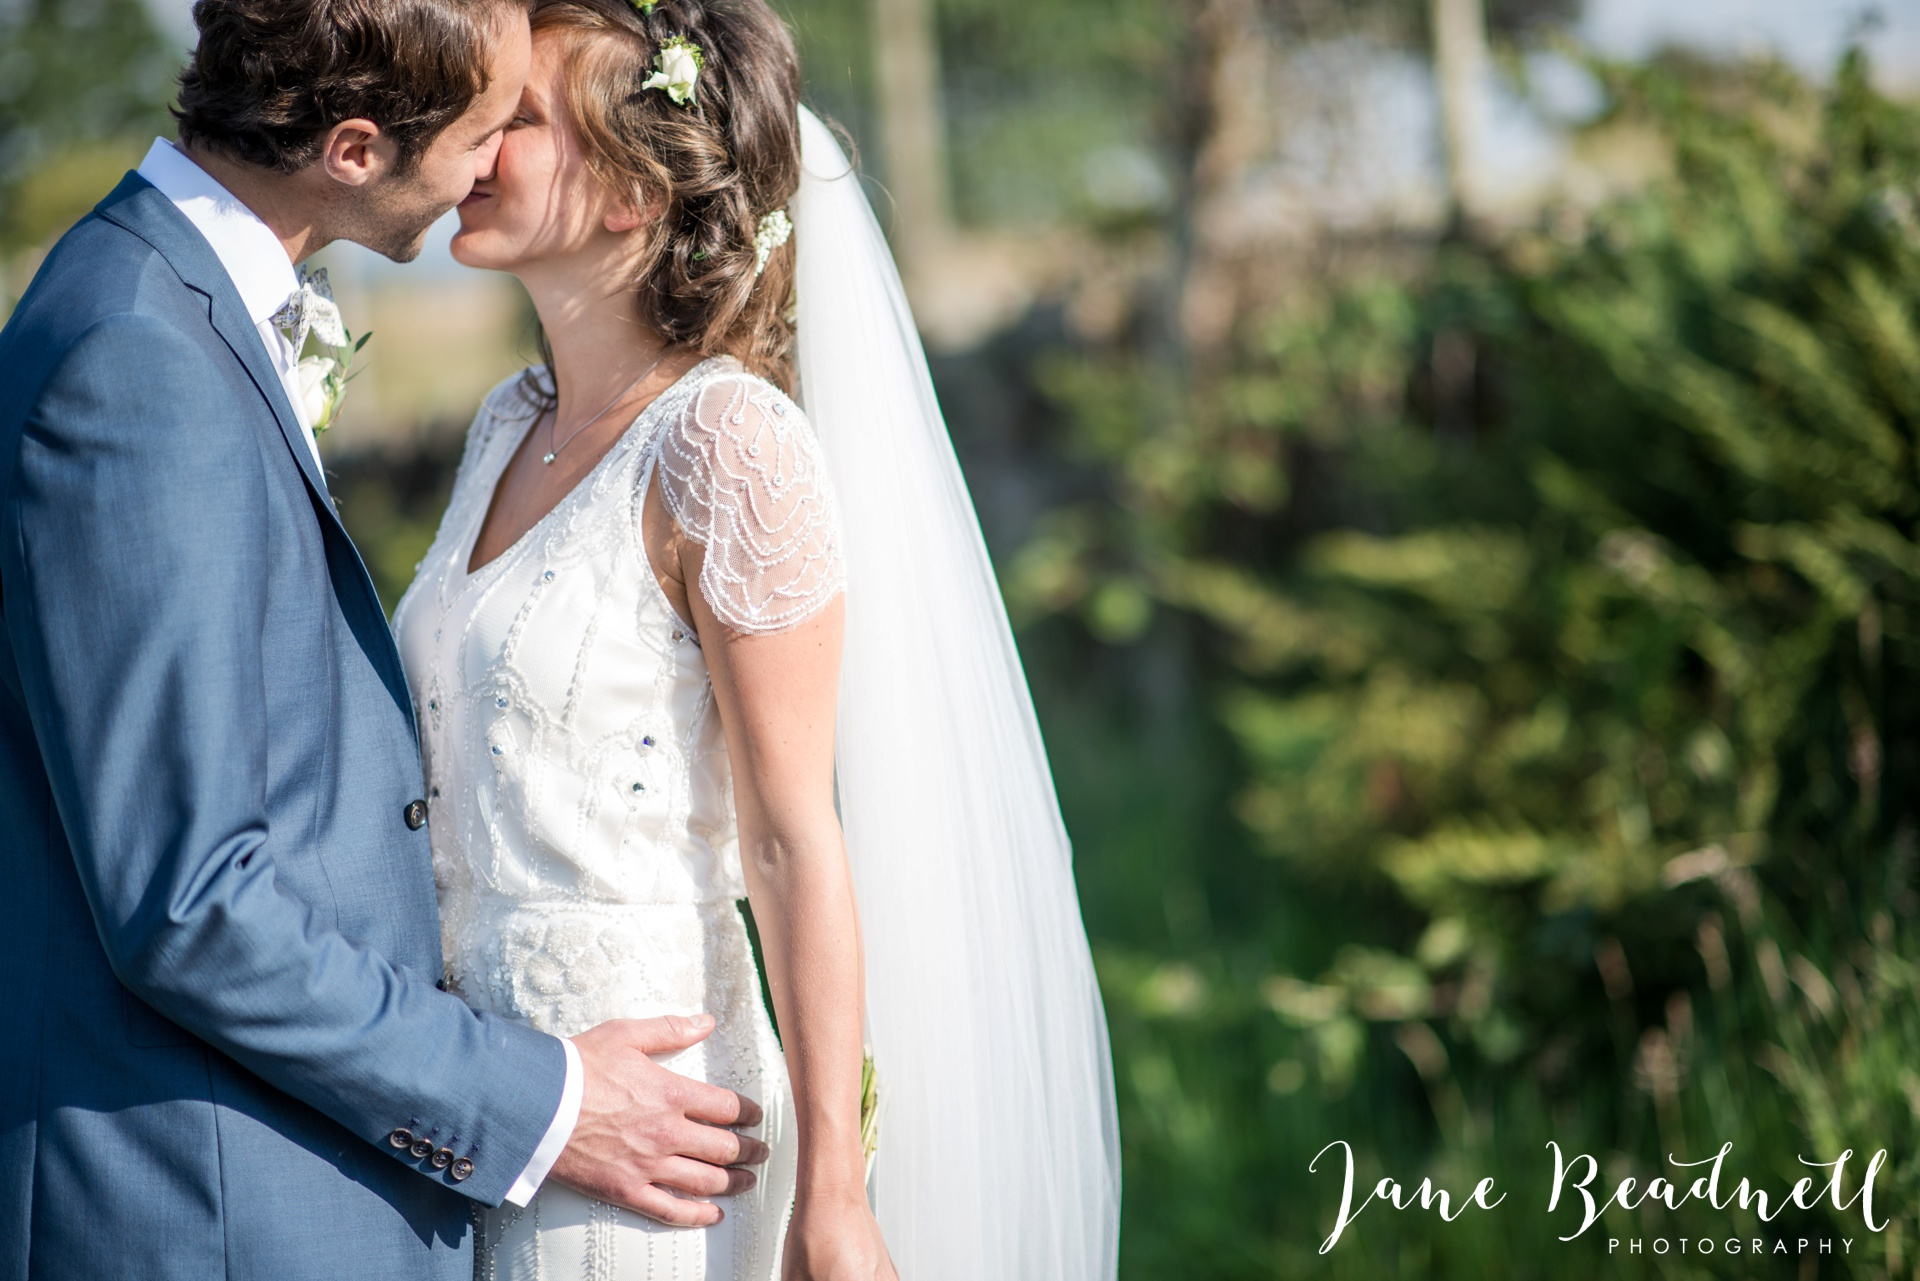 Jane Beadnell fine art wedding photographer Leeds_0087